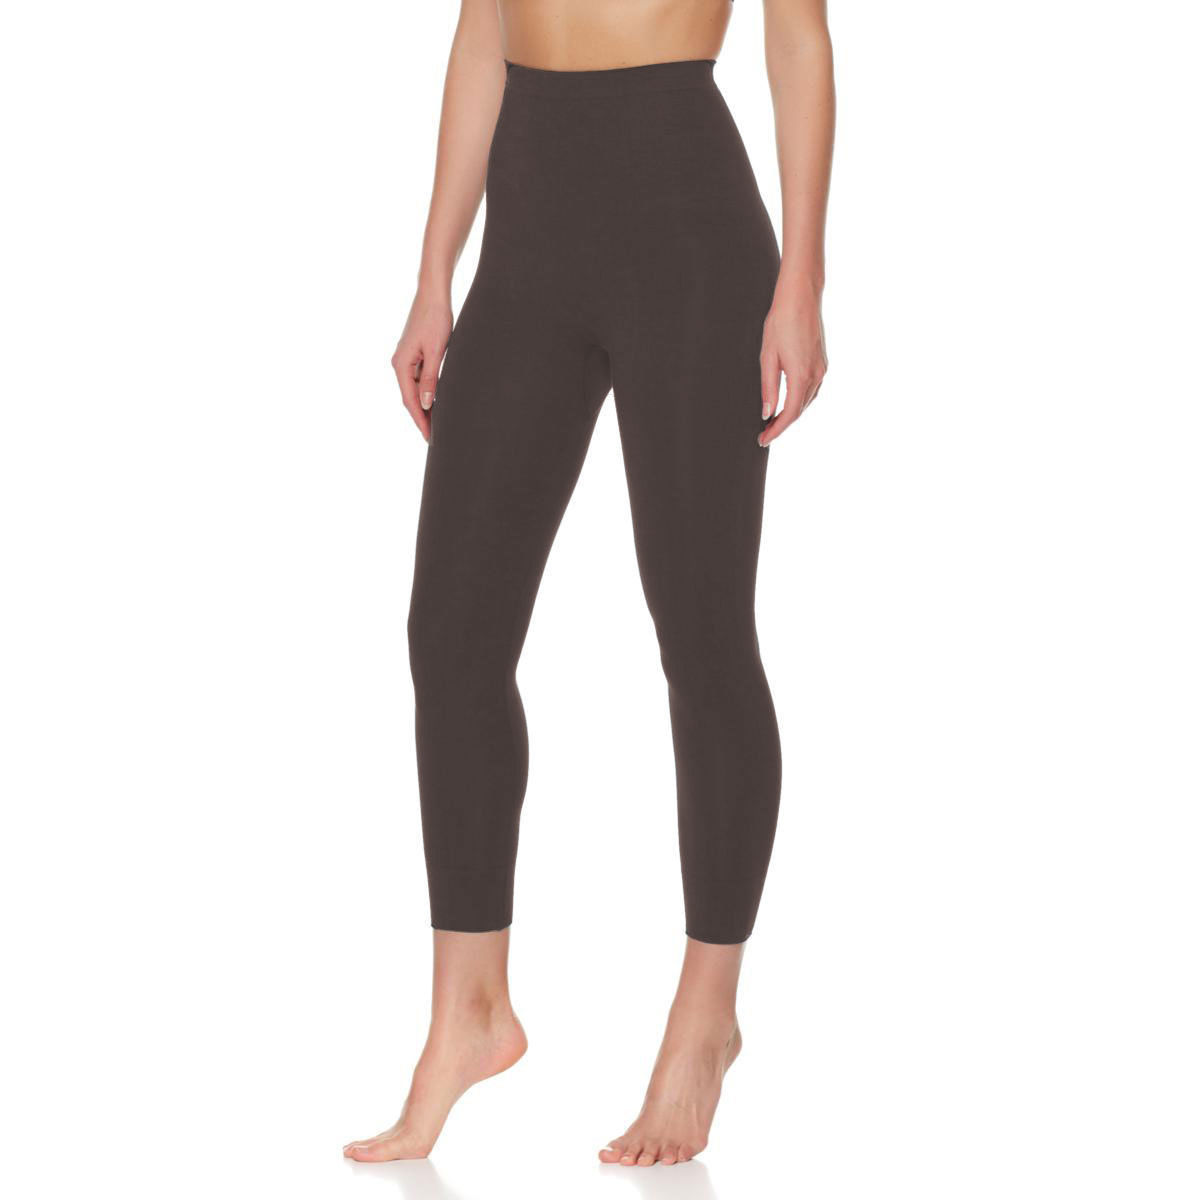 c8213900f2f93b Sale! Home / Leggings / RHONDA SHEAR Size 2XL High-Waist Cotton-Blend  Shaping Leggings CHARCOAL